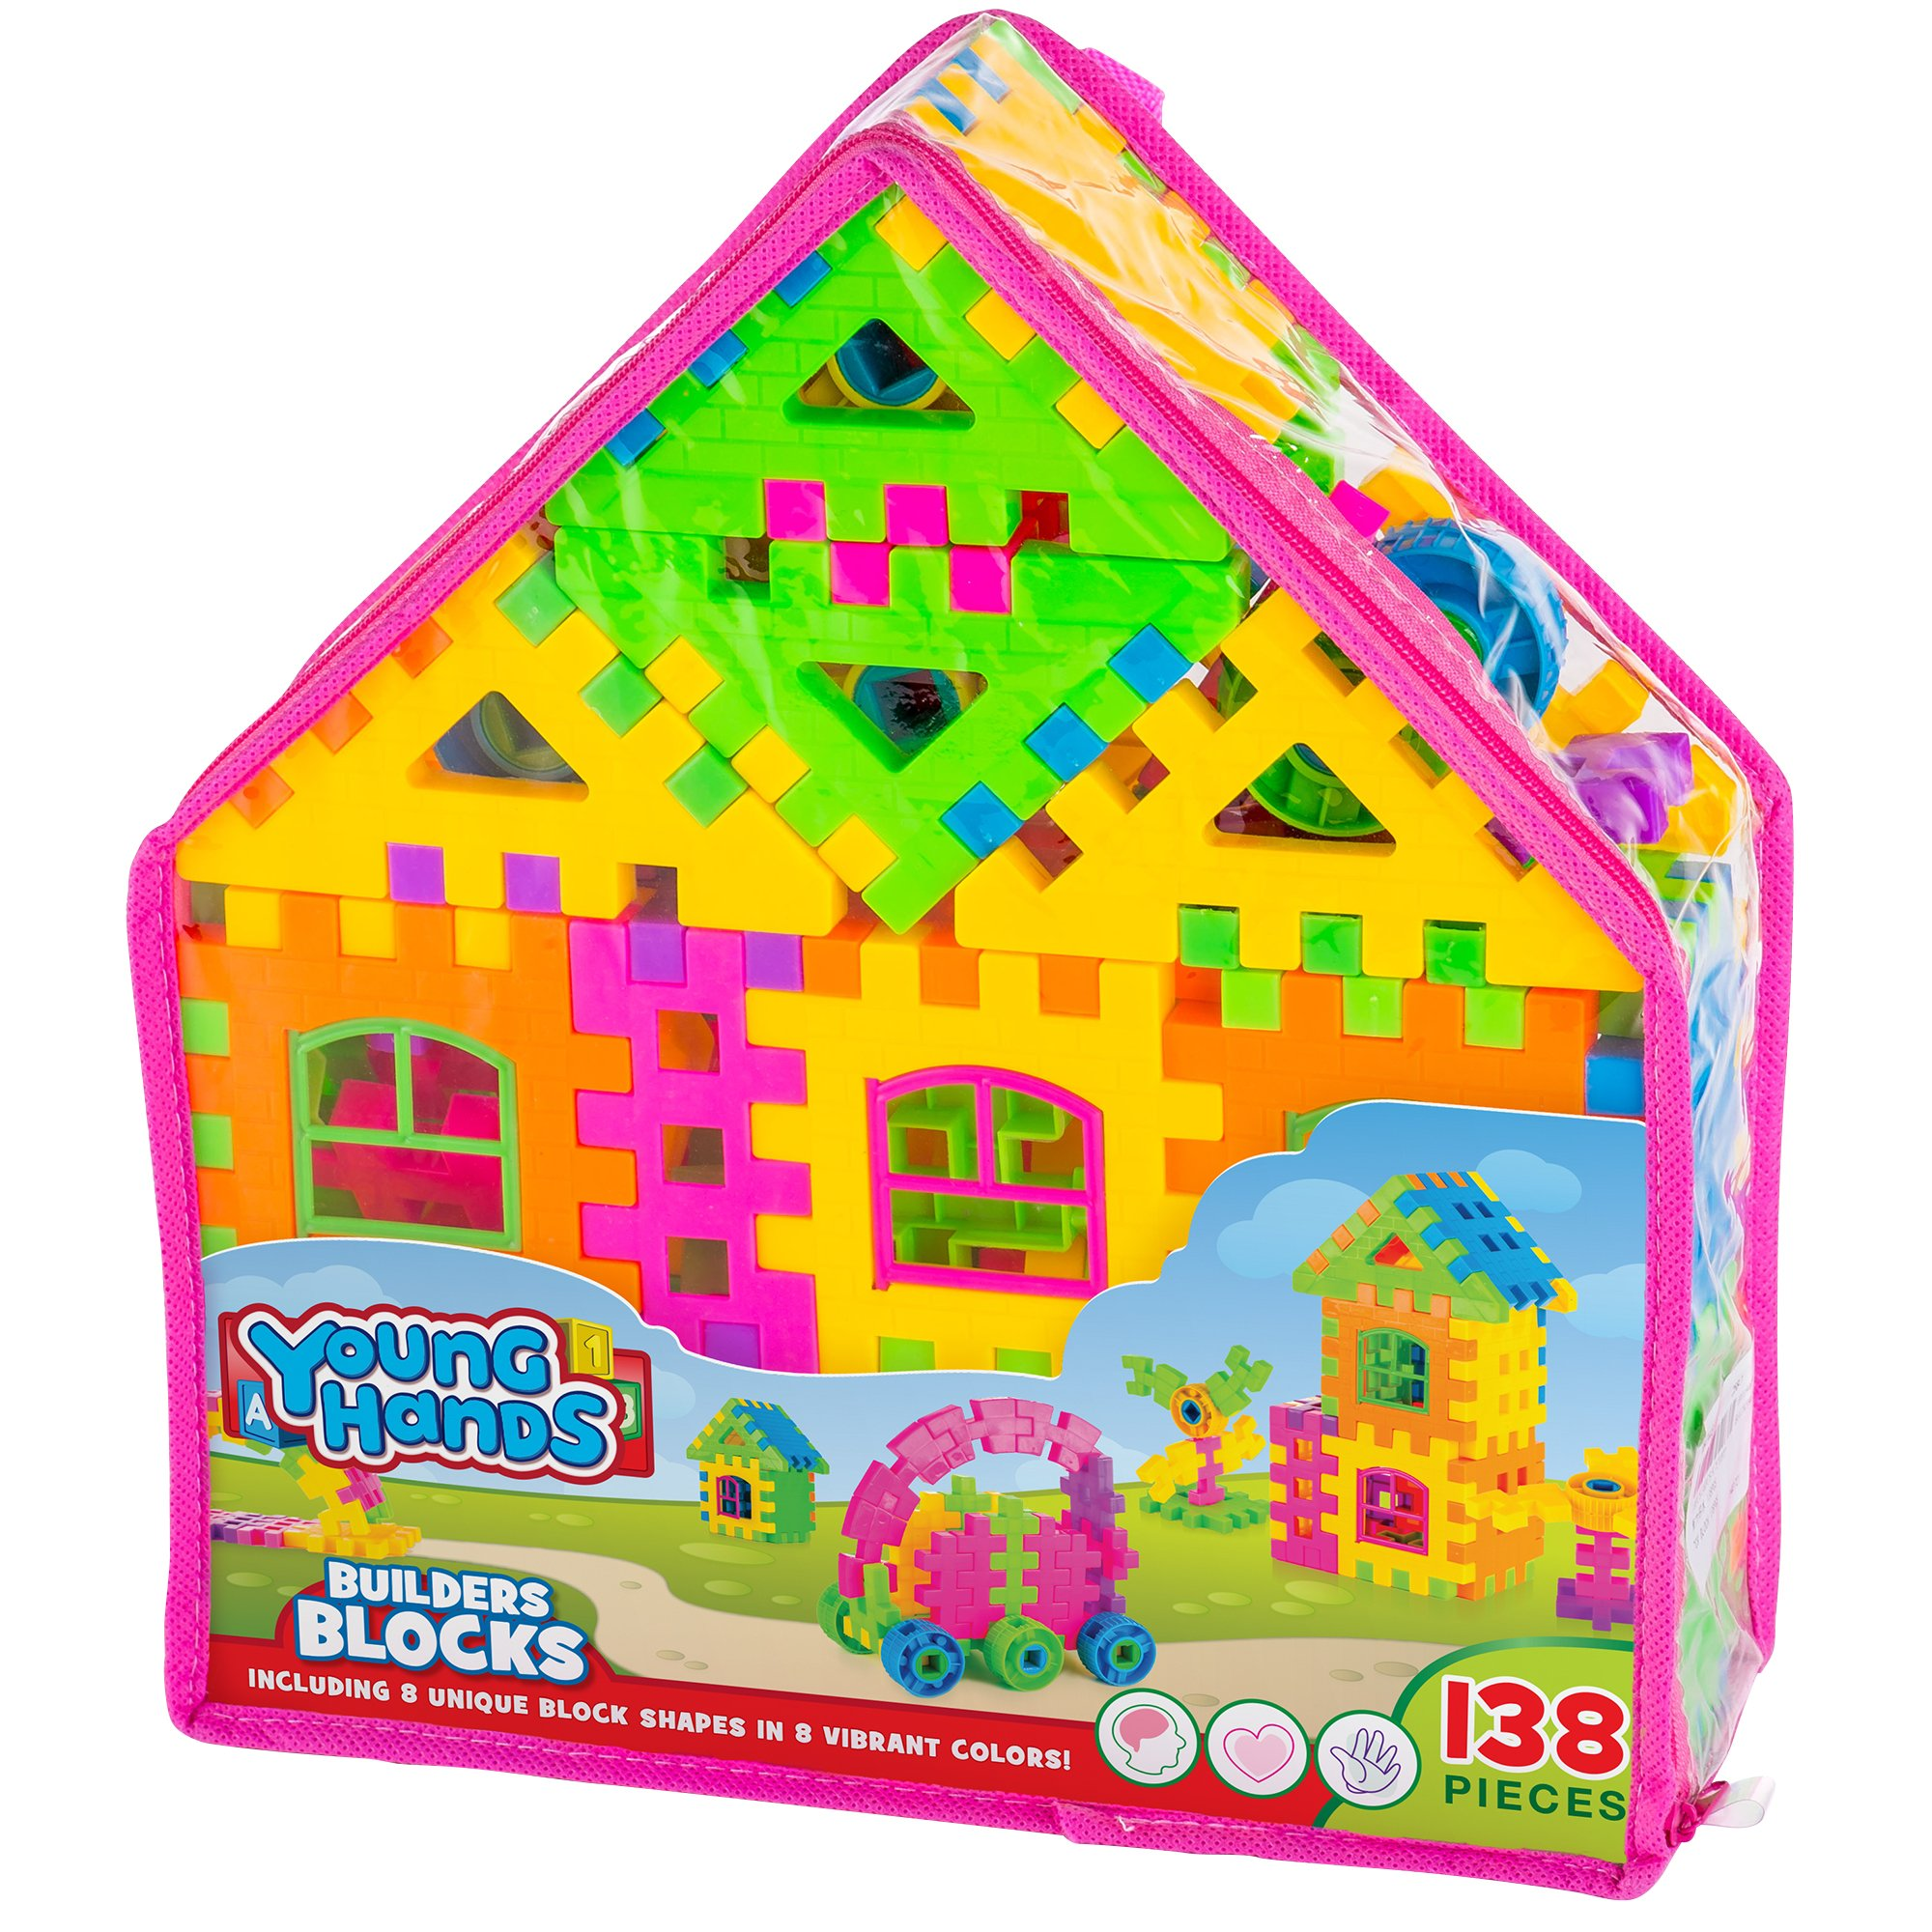 Creative Kids Interlocking Building Block Play Set for Kids w/ 138 Unique, Colorful Bricks & Convenient Carry Backpack - Educational Construction Kit for Preschool, Kindergarten & More